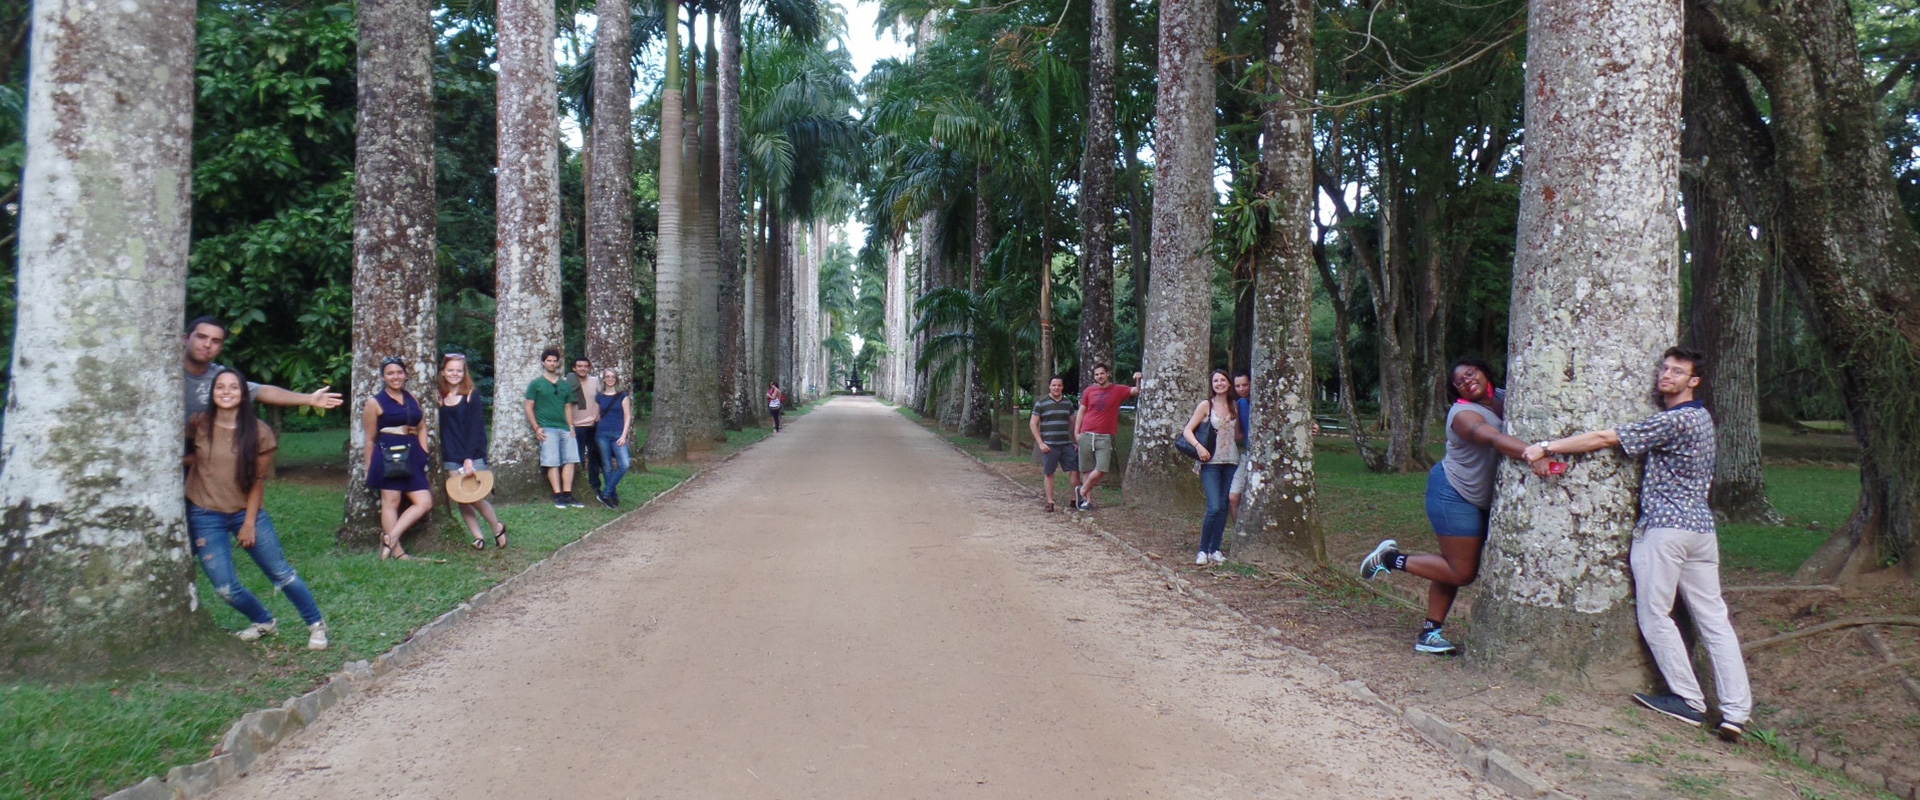 Students hugging trees at Botanical Garden in the RioLIVE! Activities in Rio de Janeiro.